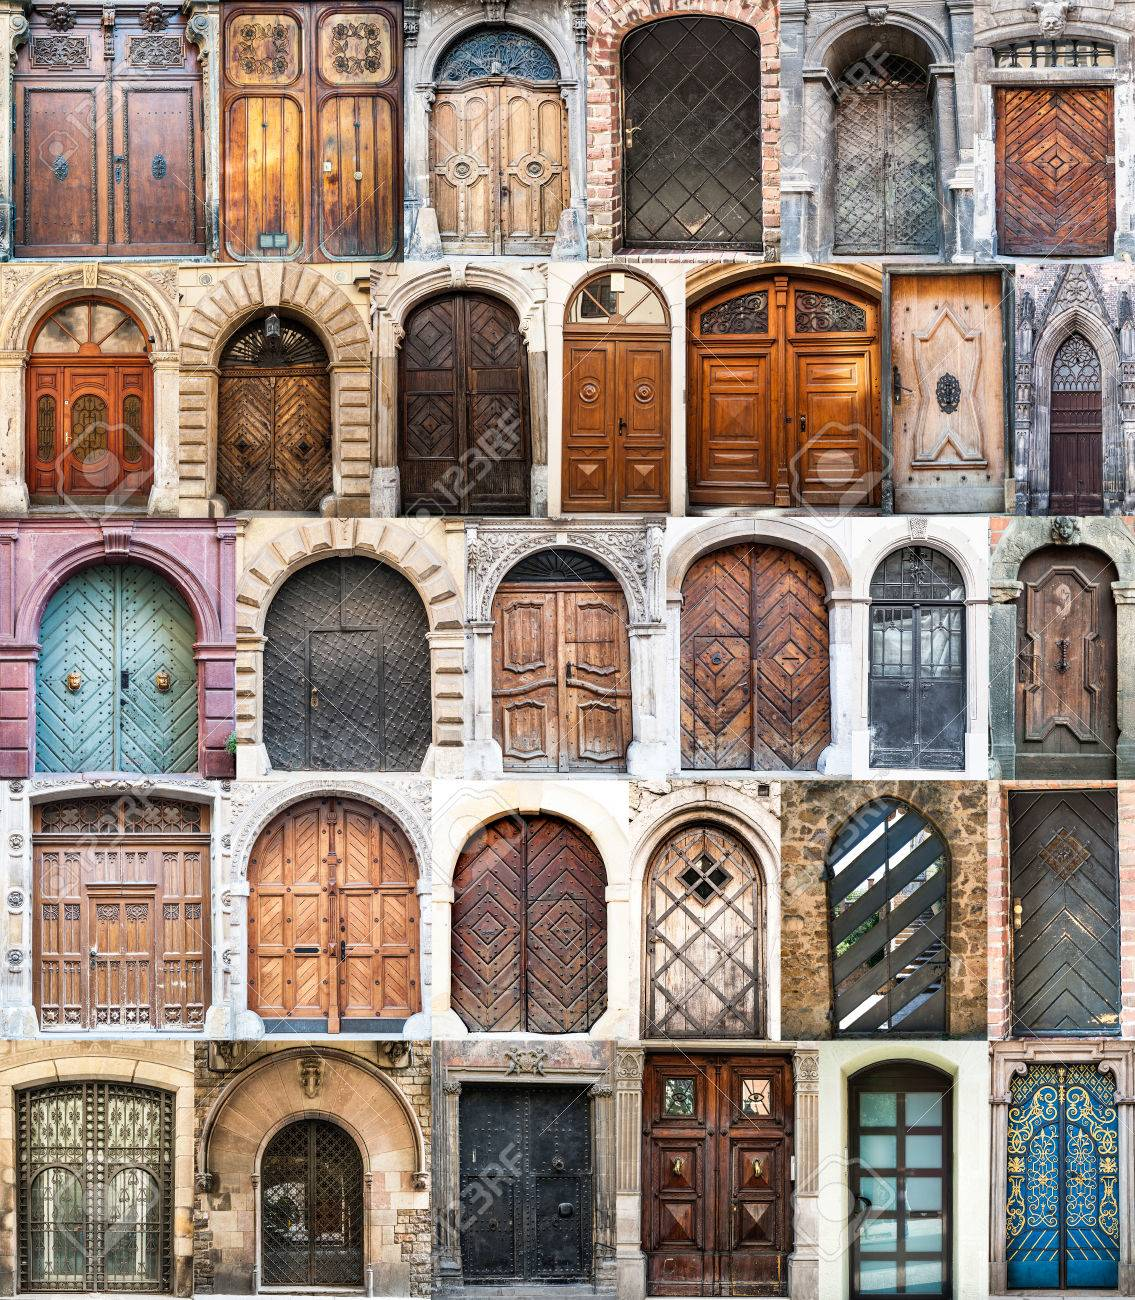 photo collage of old doors Gothic quarter in Barcelona Spain Stock Photo - 22488607 & Photo Collage Of Old Doors Gothic Quarter In Barcelona Spain Stock ...